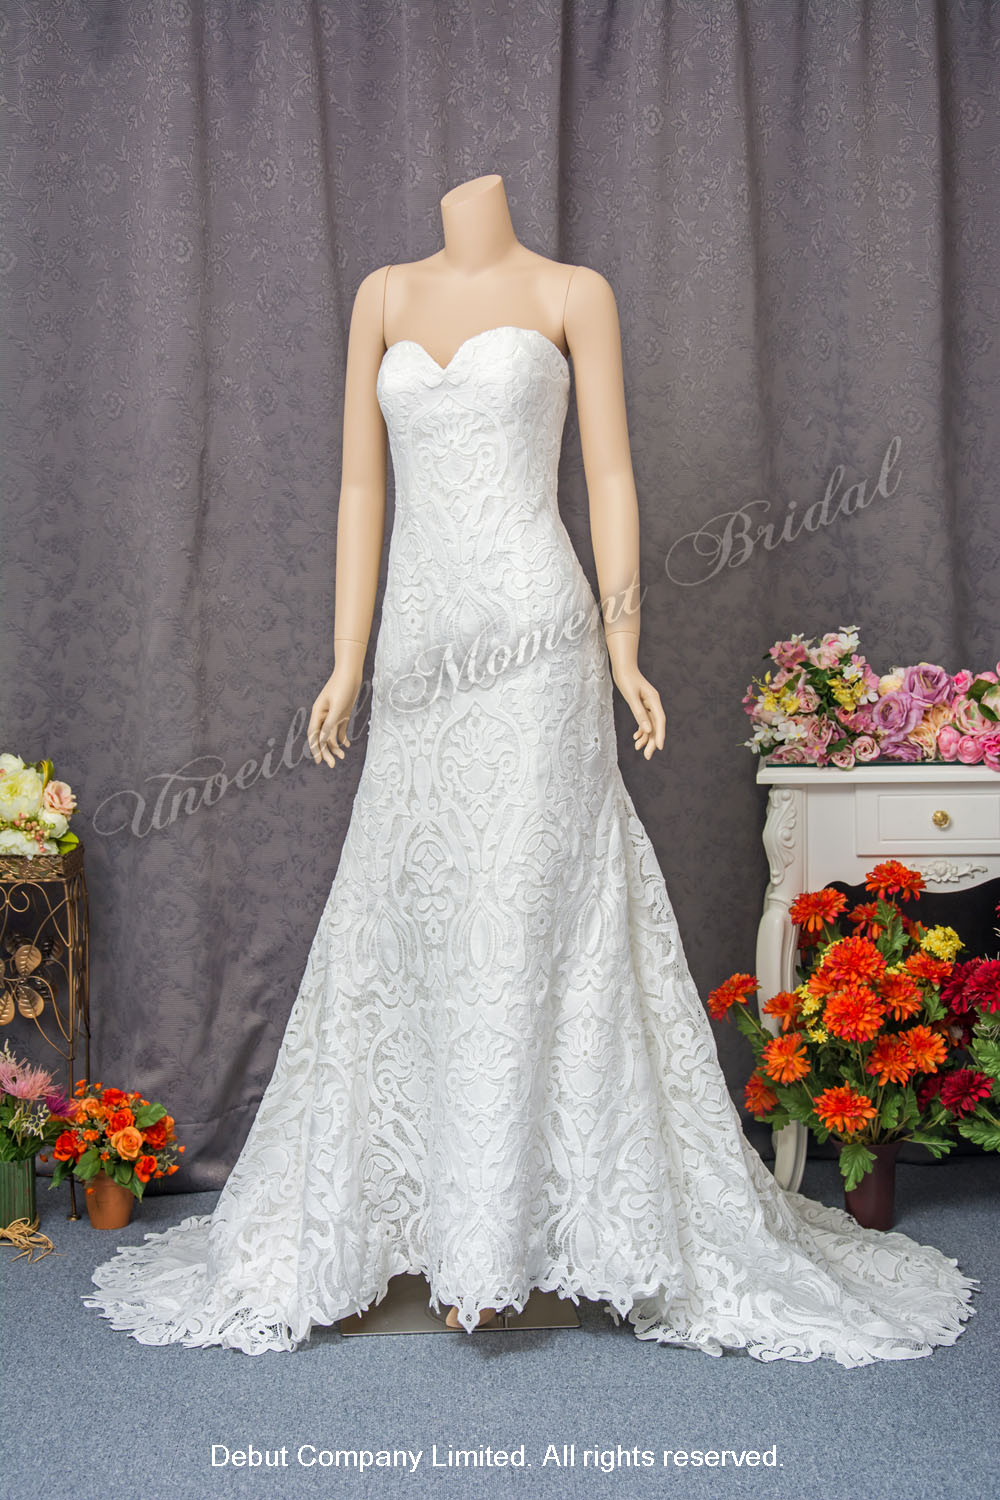 Strapless, mermaid bridal dress with sweetheart neckline, lace embellishments and brush train. 無肩帶, 心形胸, 蕾絲, 長拖尾, 魚尾款婚紗